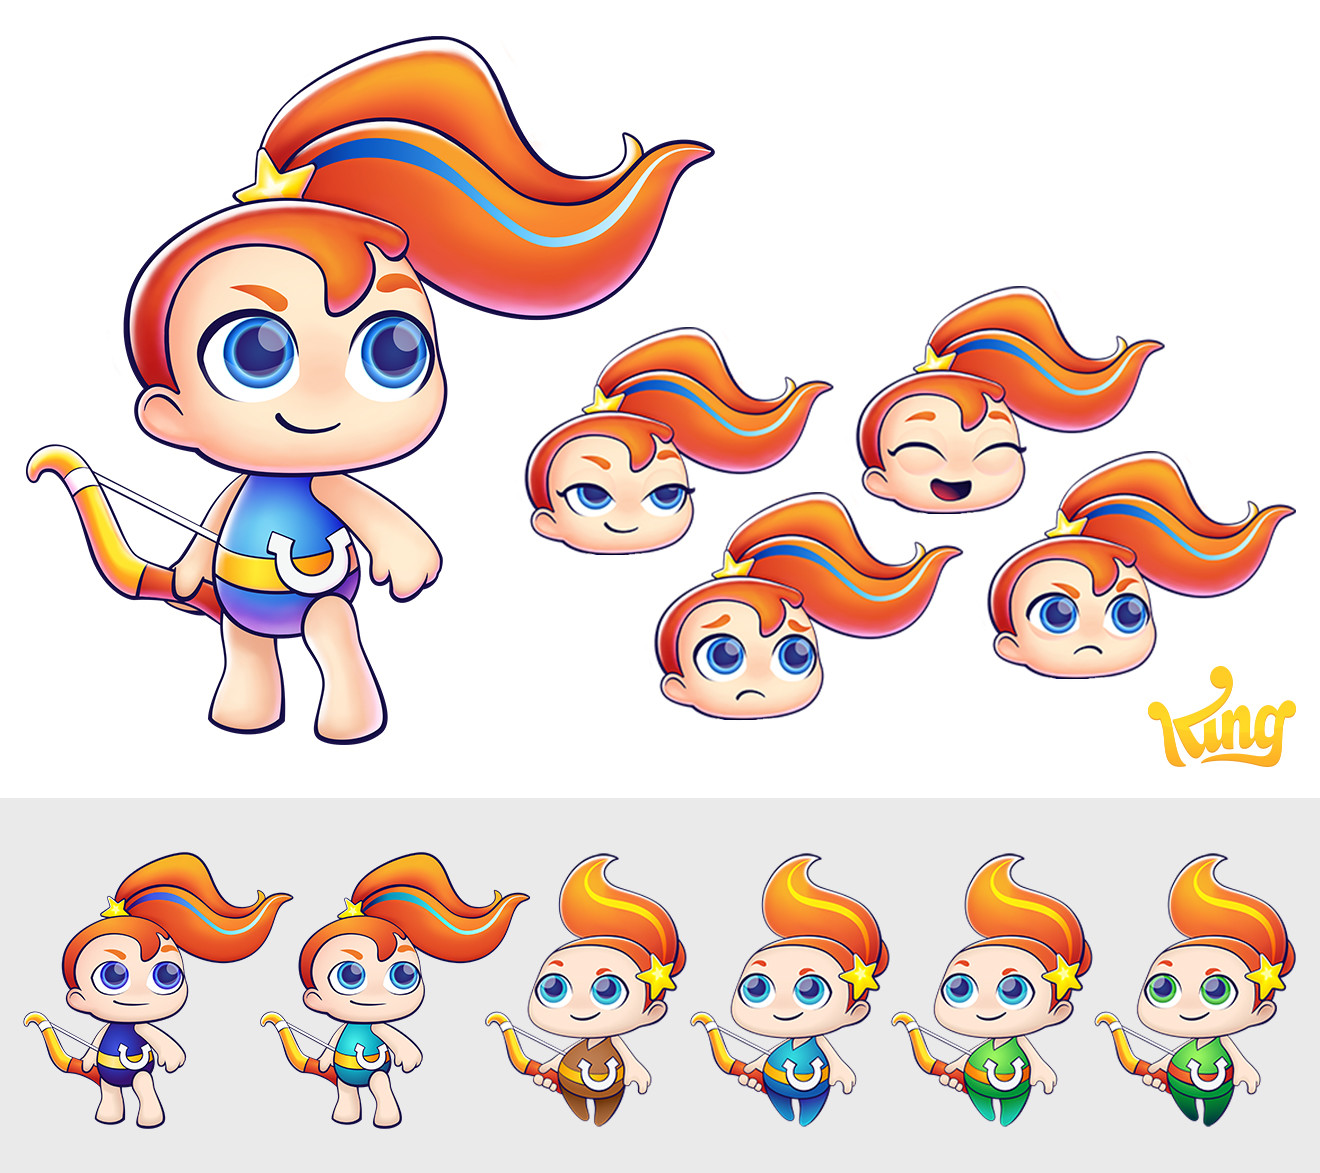 Final design of the Sagittarius character with a set of expressions. Done in Illustrator, polished in Photoshop, exported for animation in Spine.